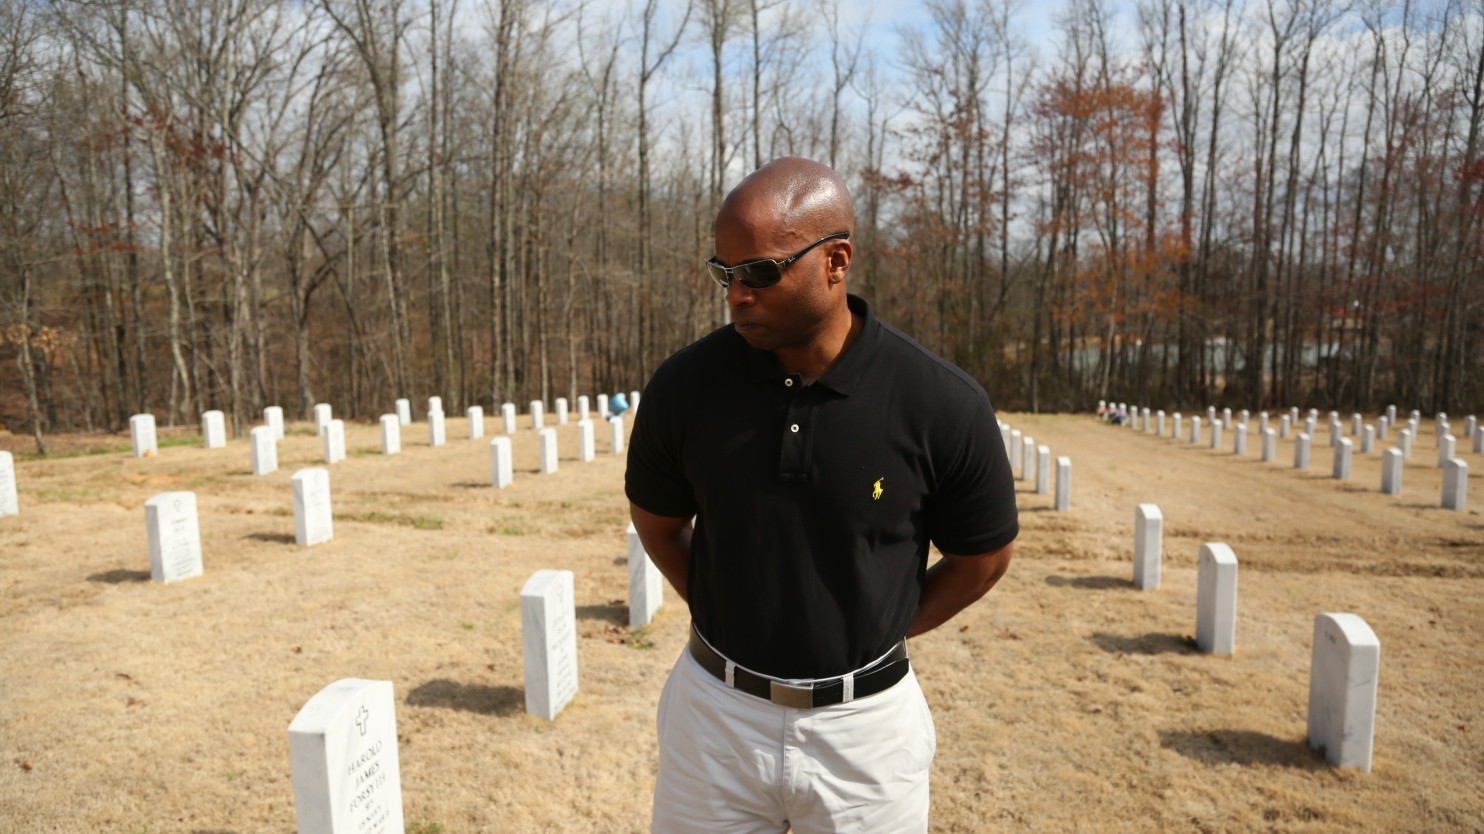 An investigation of the shooting death of 67-year-old Eugene Ellison at the hands of a Little Rock police officer left his sons, including Little Rock police Lt. Troy Ellison, embittered, and with little resolved in the minds of the public. Troy Ellison was photographed at his father's grave March 7. (Whitney Shefte/The Washington Post)